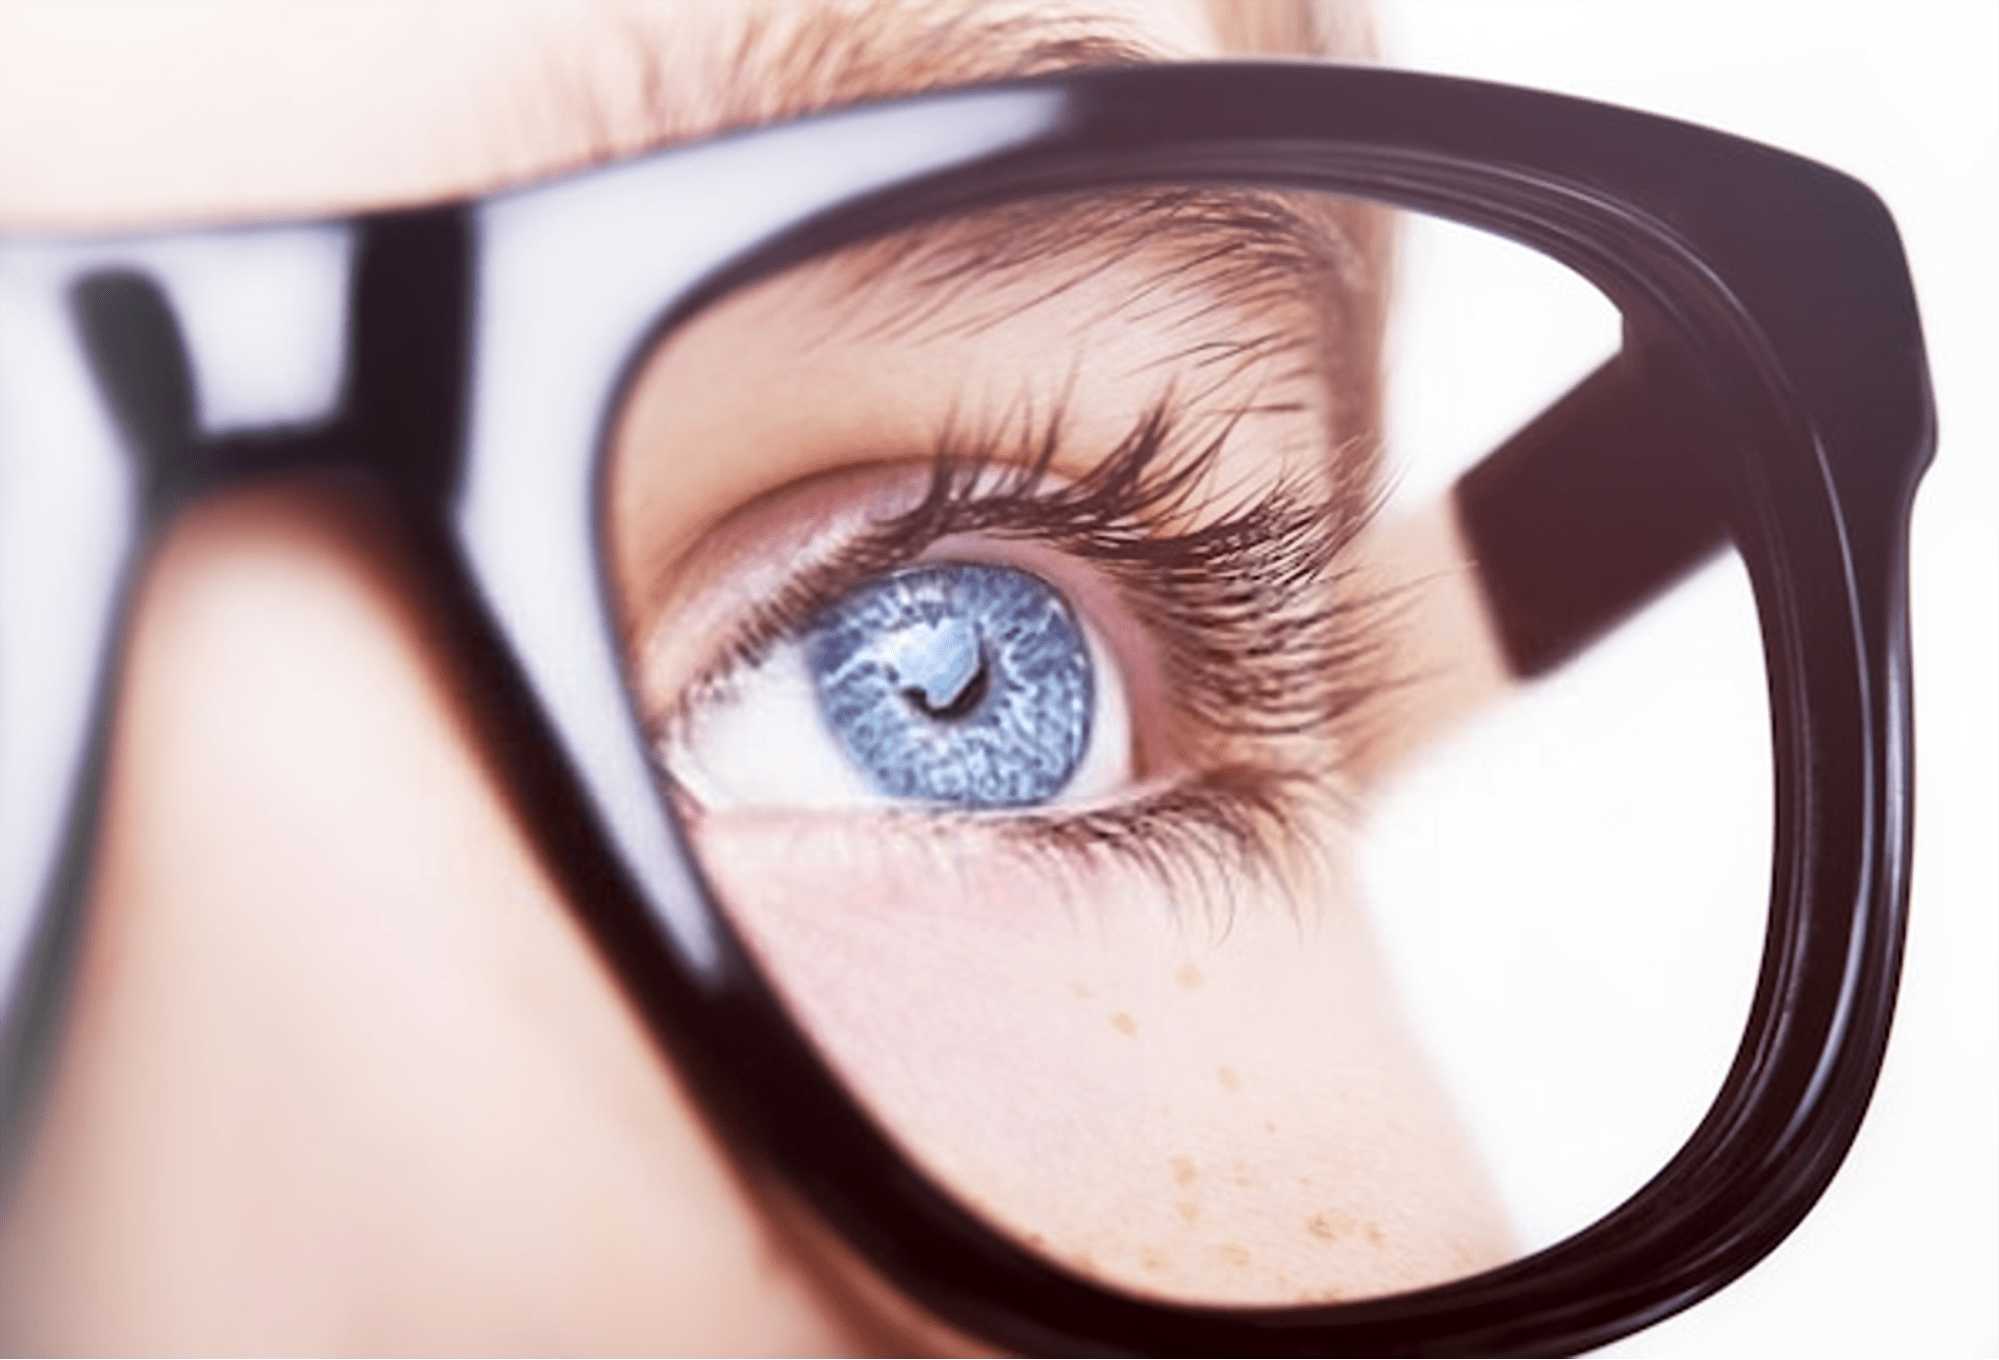 Eye Health: How to Protect Your Eyesight